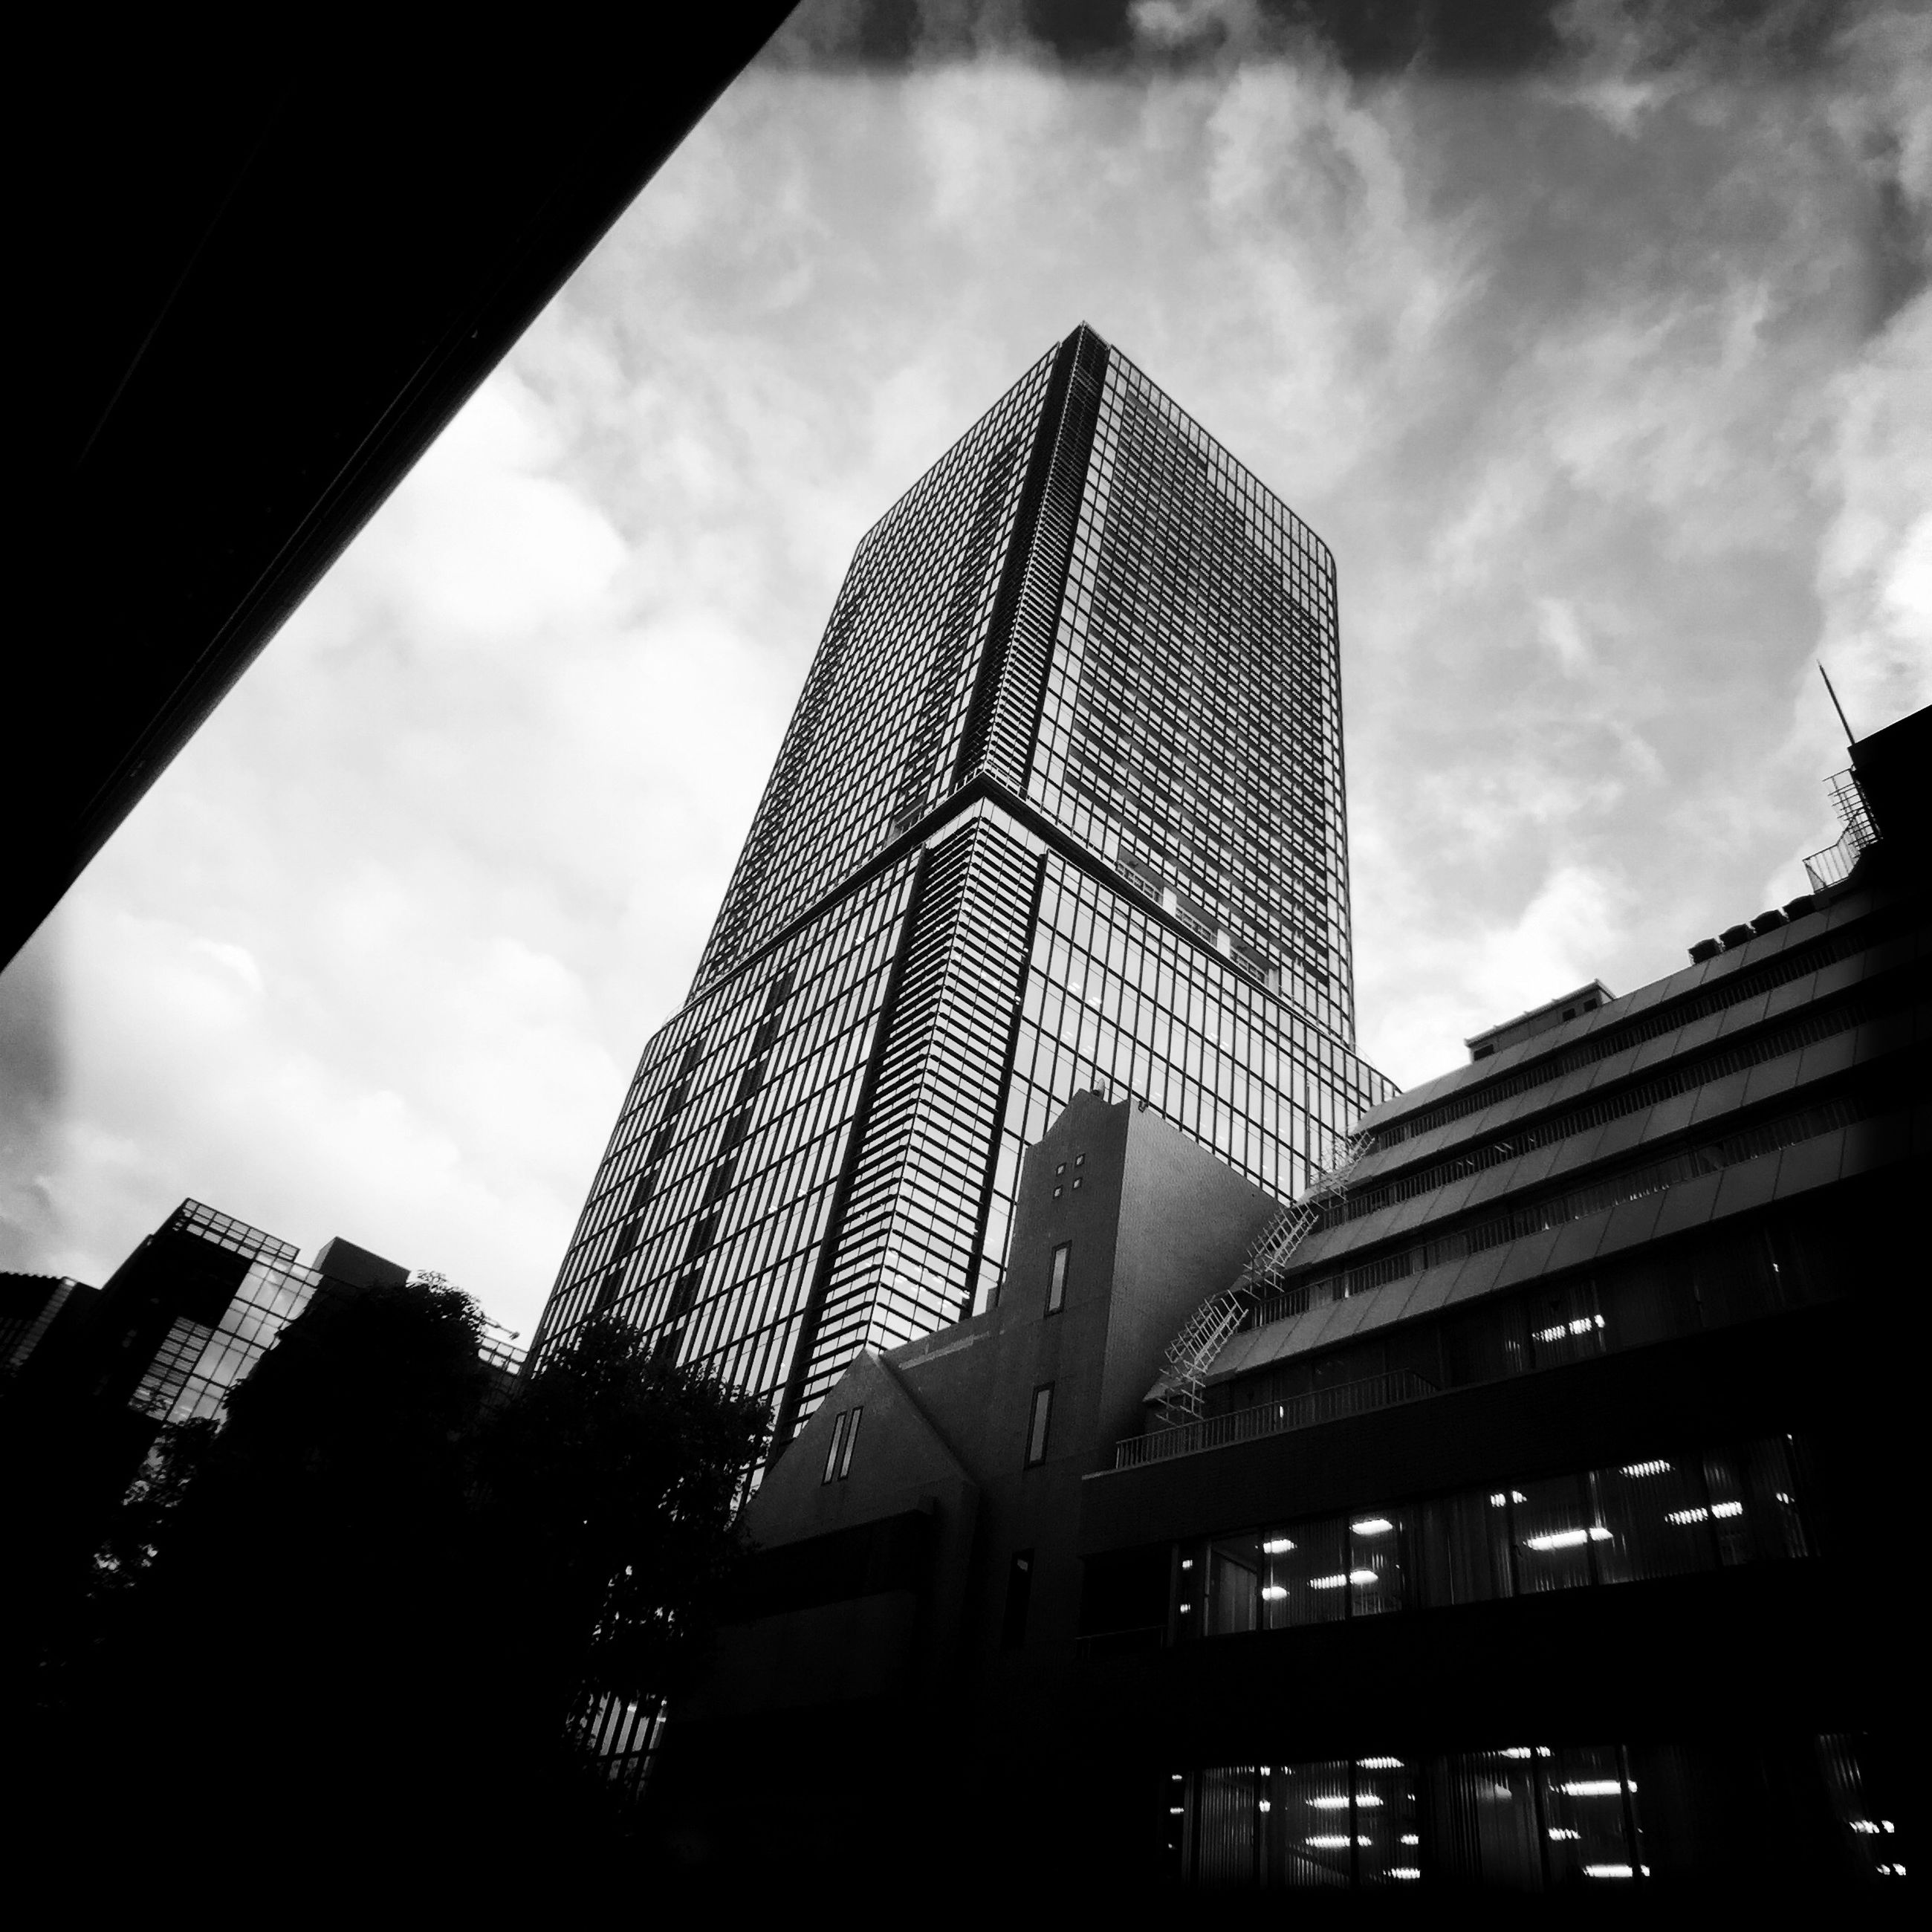 architecture, building exterior, built structure, low angle view, skyscraper, city, modern, office building, tall - high, sky, tower, building, cloud - sky, glass - material, city life, tall, cloud, no people, outdoors, residential building